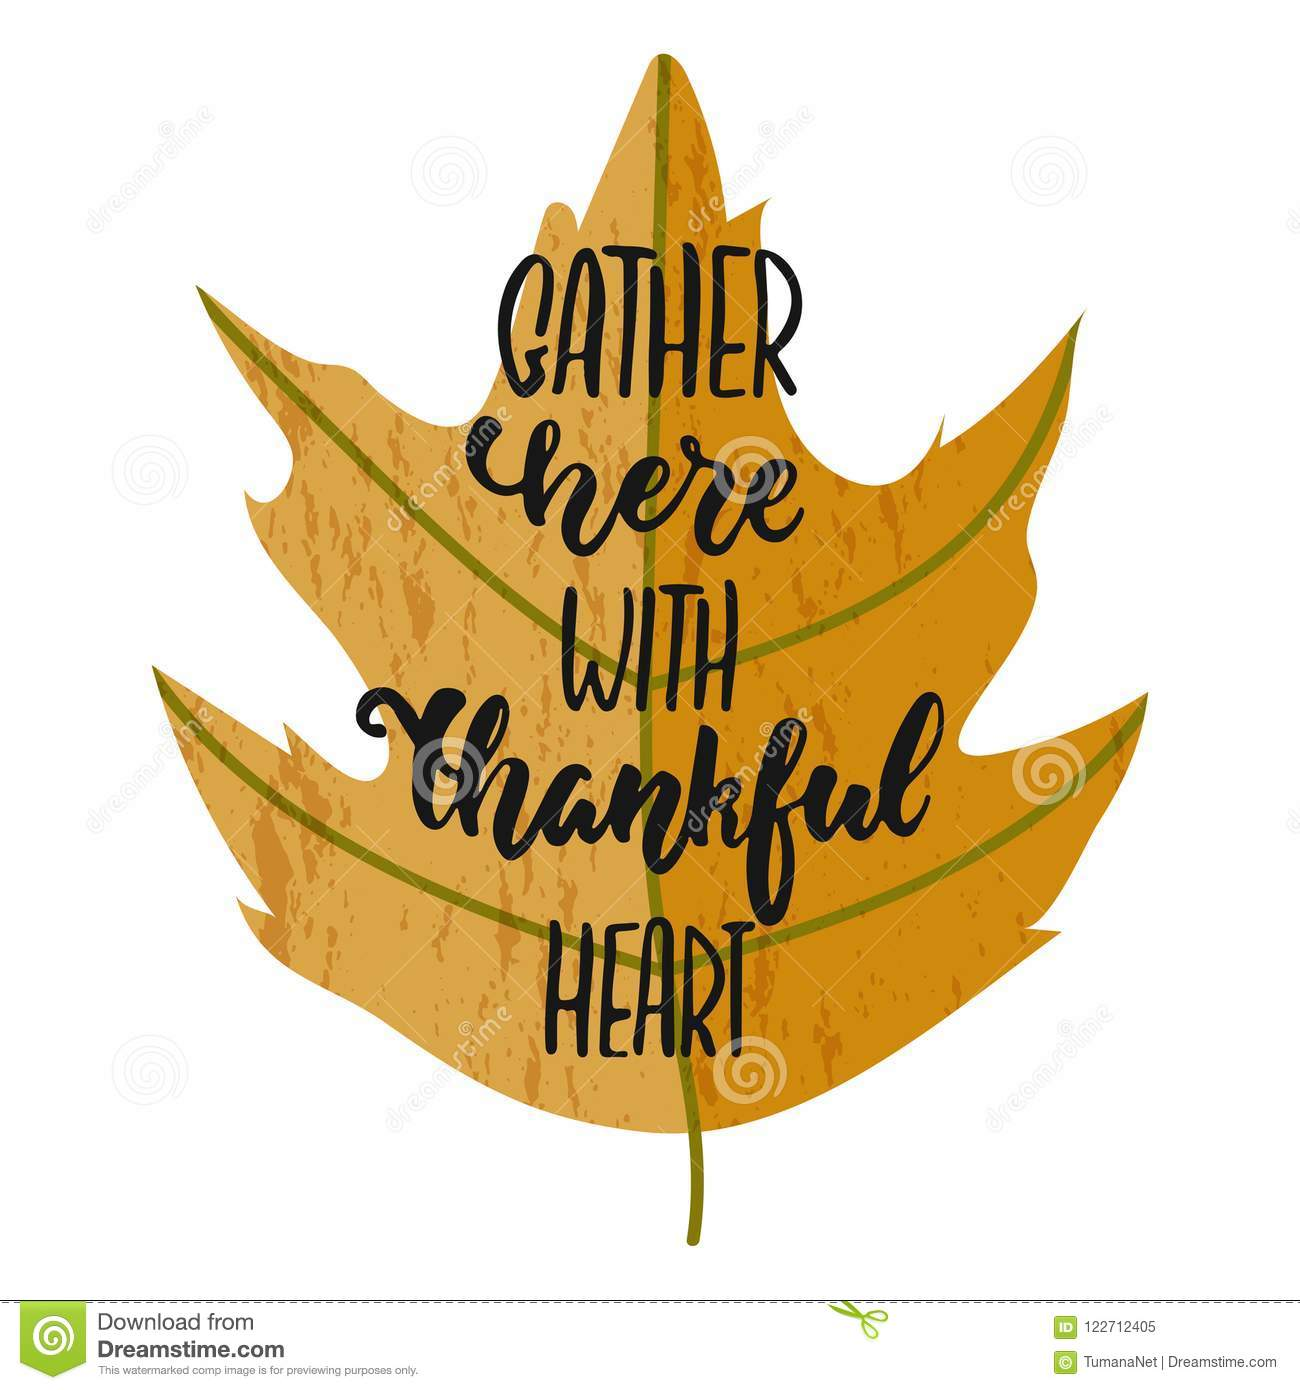 Gather here with thankful heart - hand drawn Autumn seasons Thanksgiving holiday lettering phrase isolated on the white